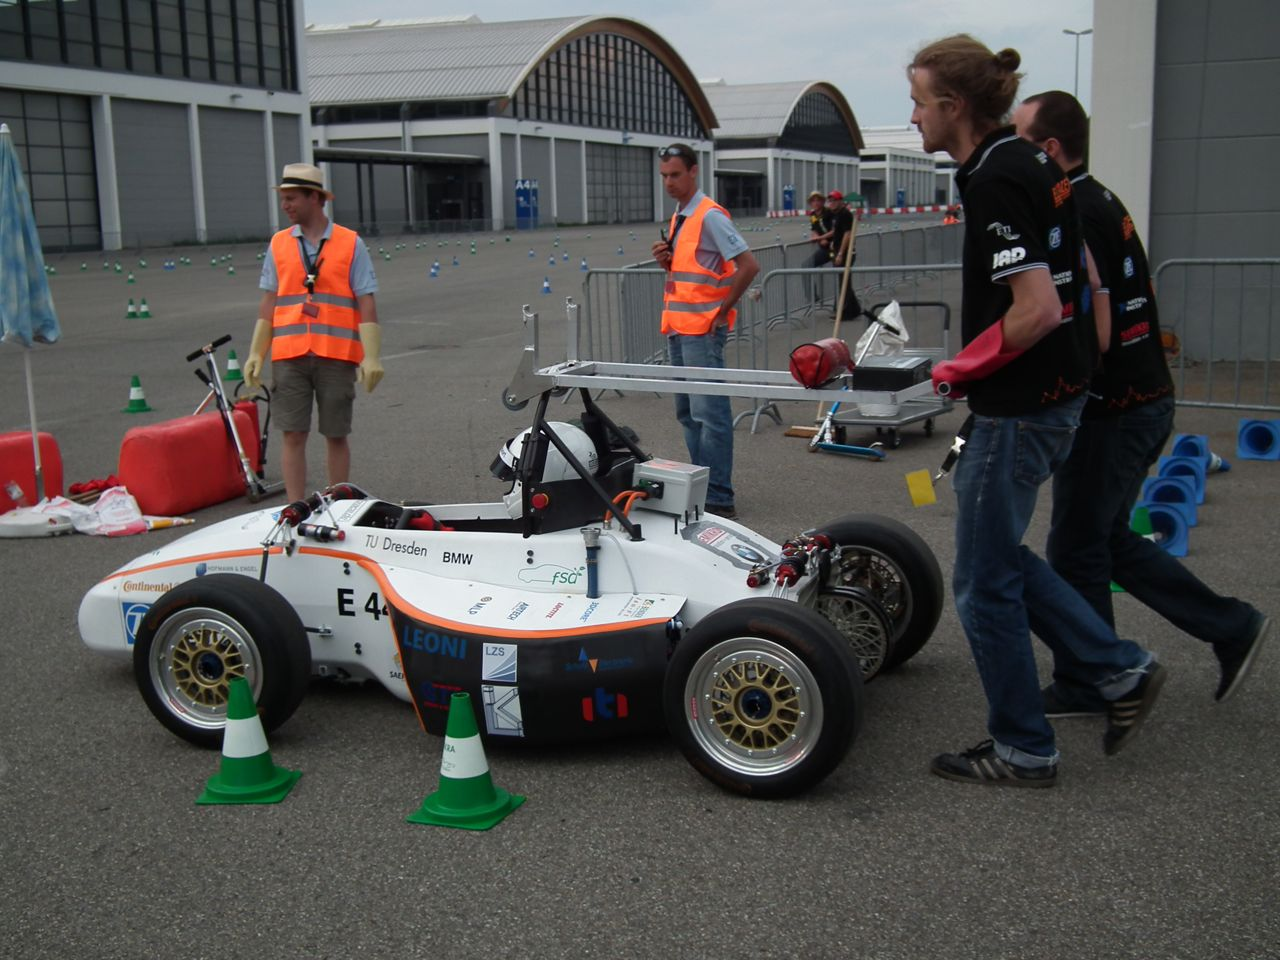 zf_racecamp_201106